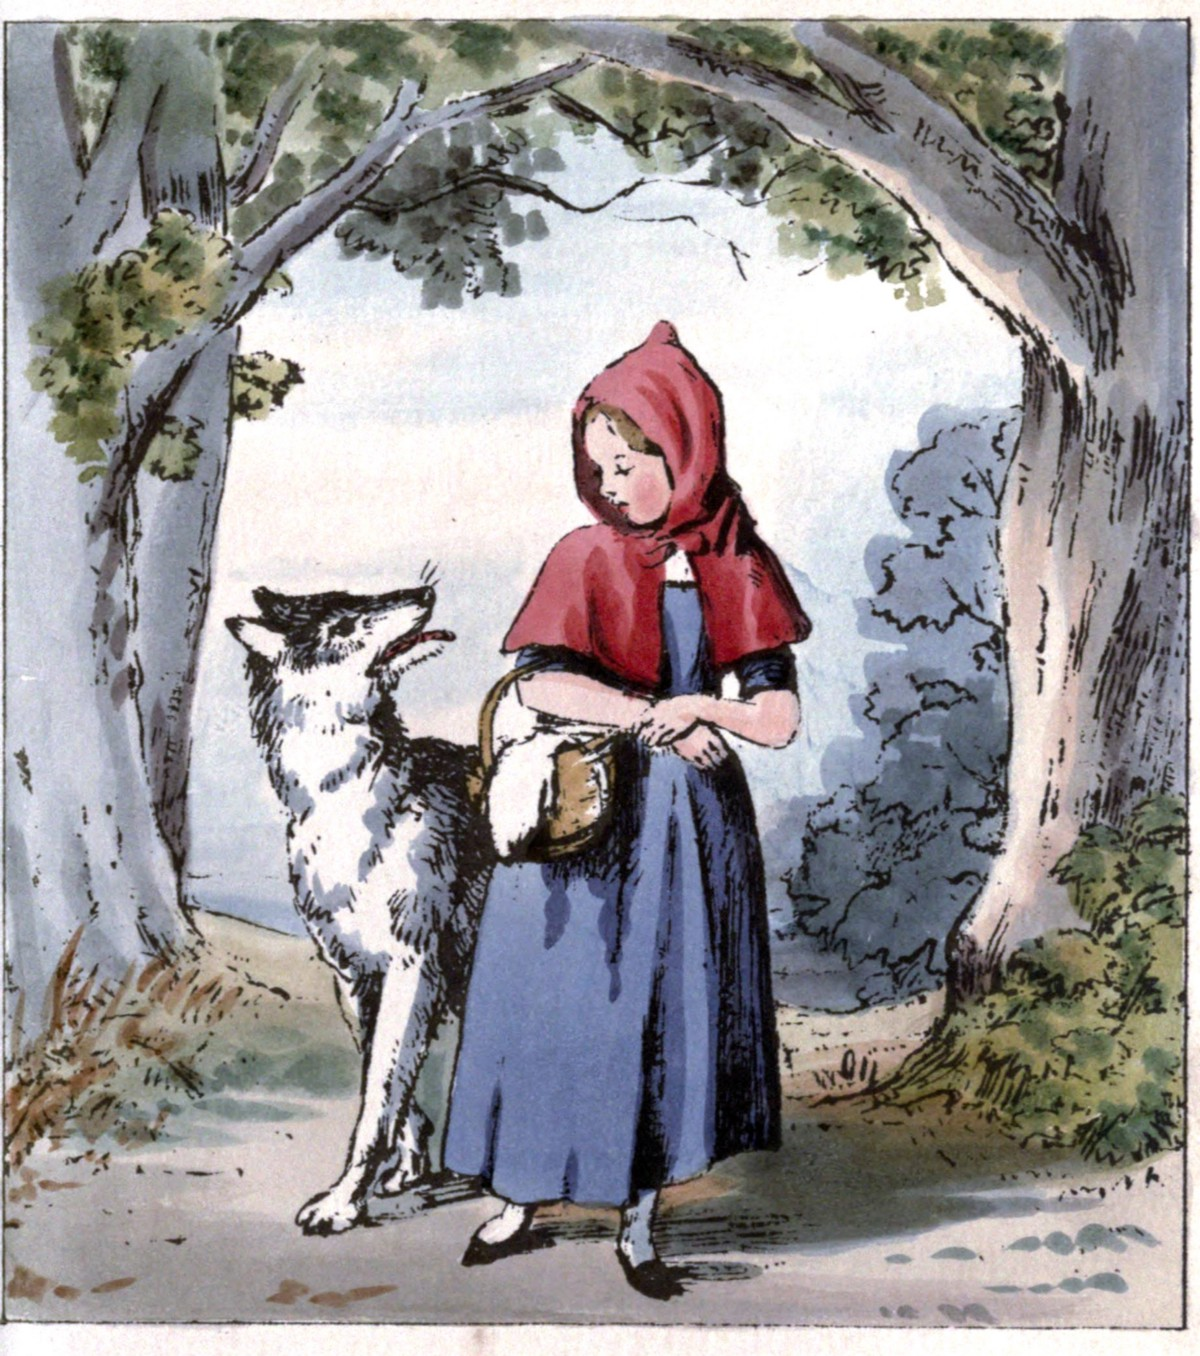 1ee46fa72 Did The Big Bad Wolf 'LOVE' Little Red Riding Hood?